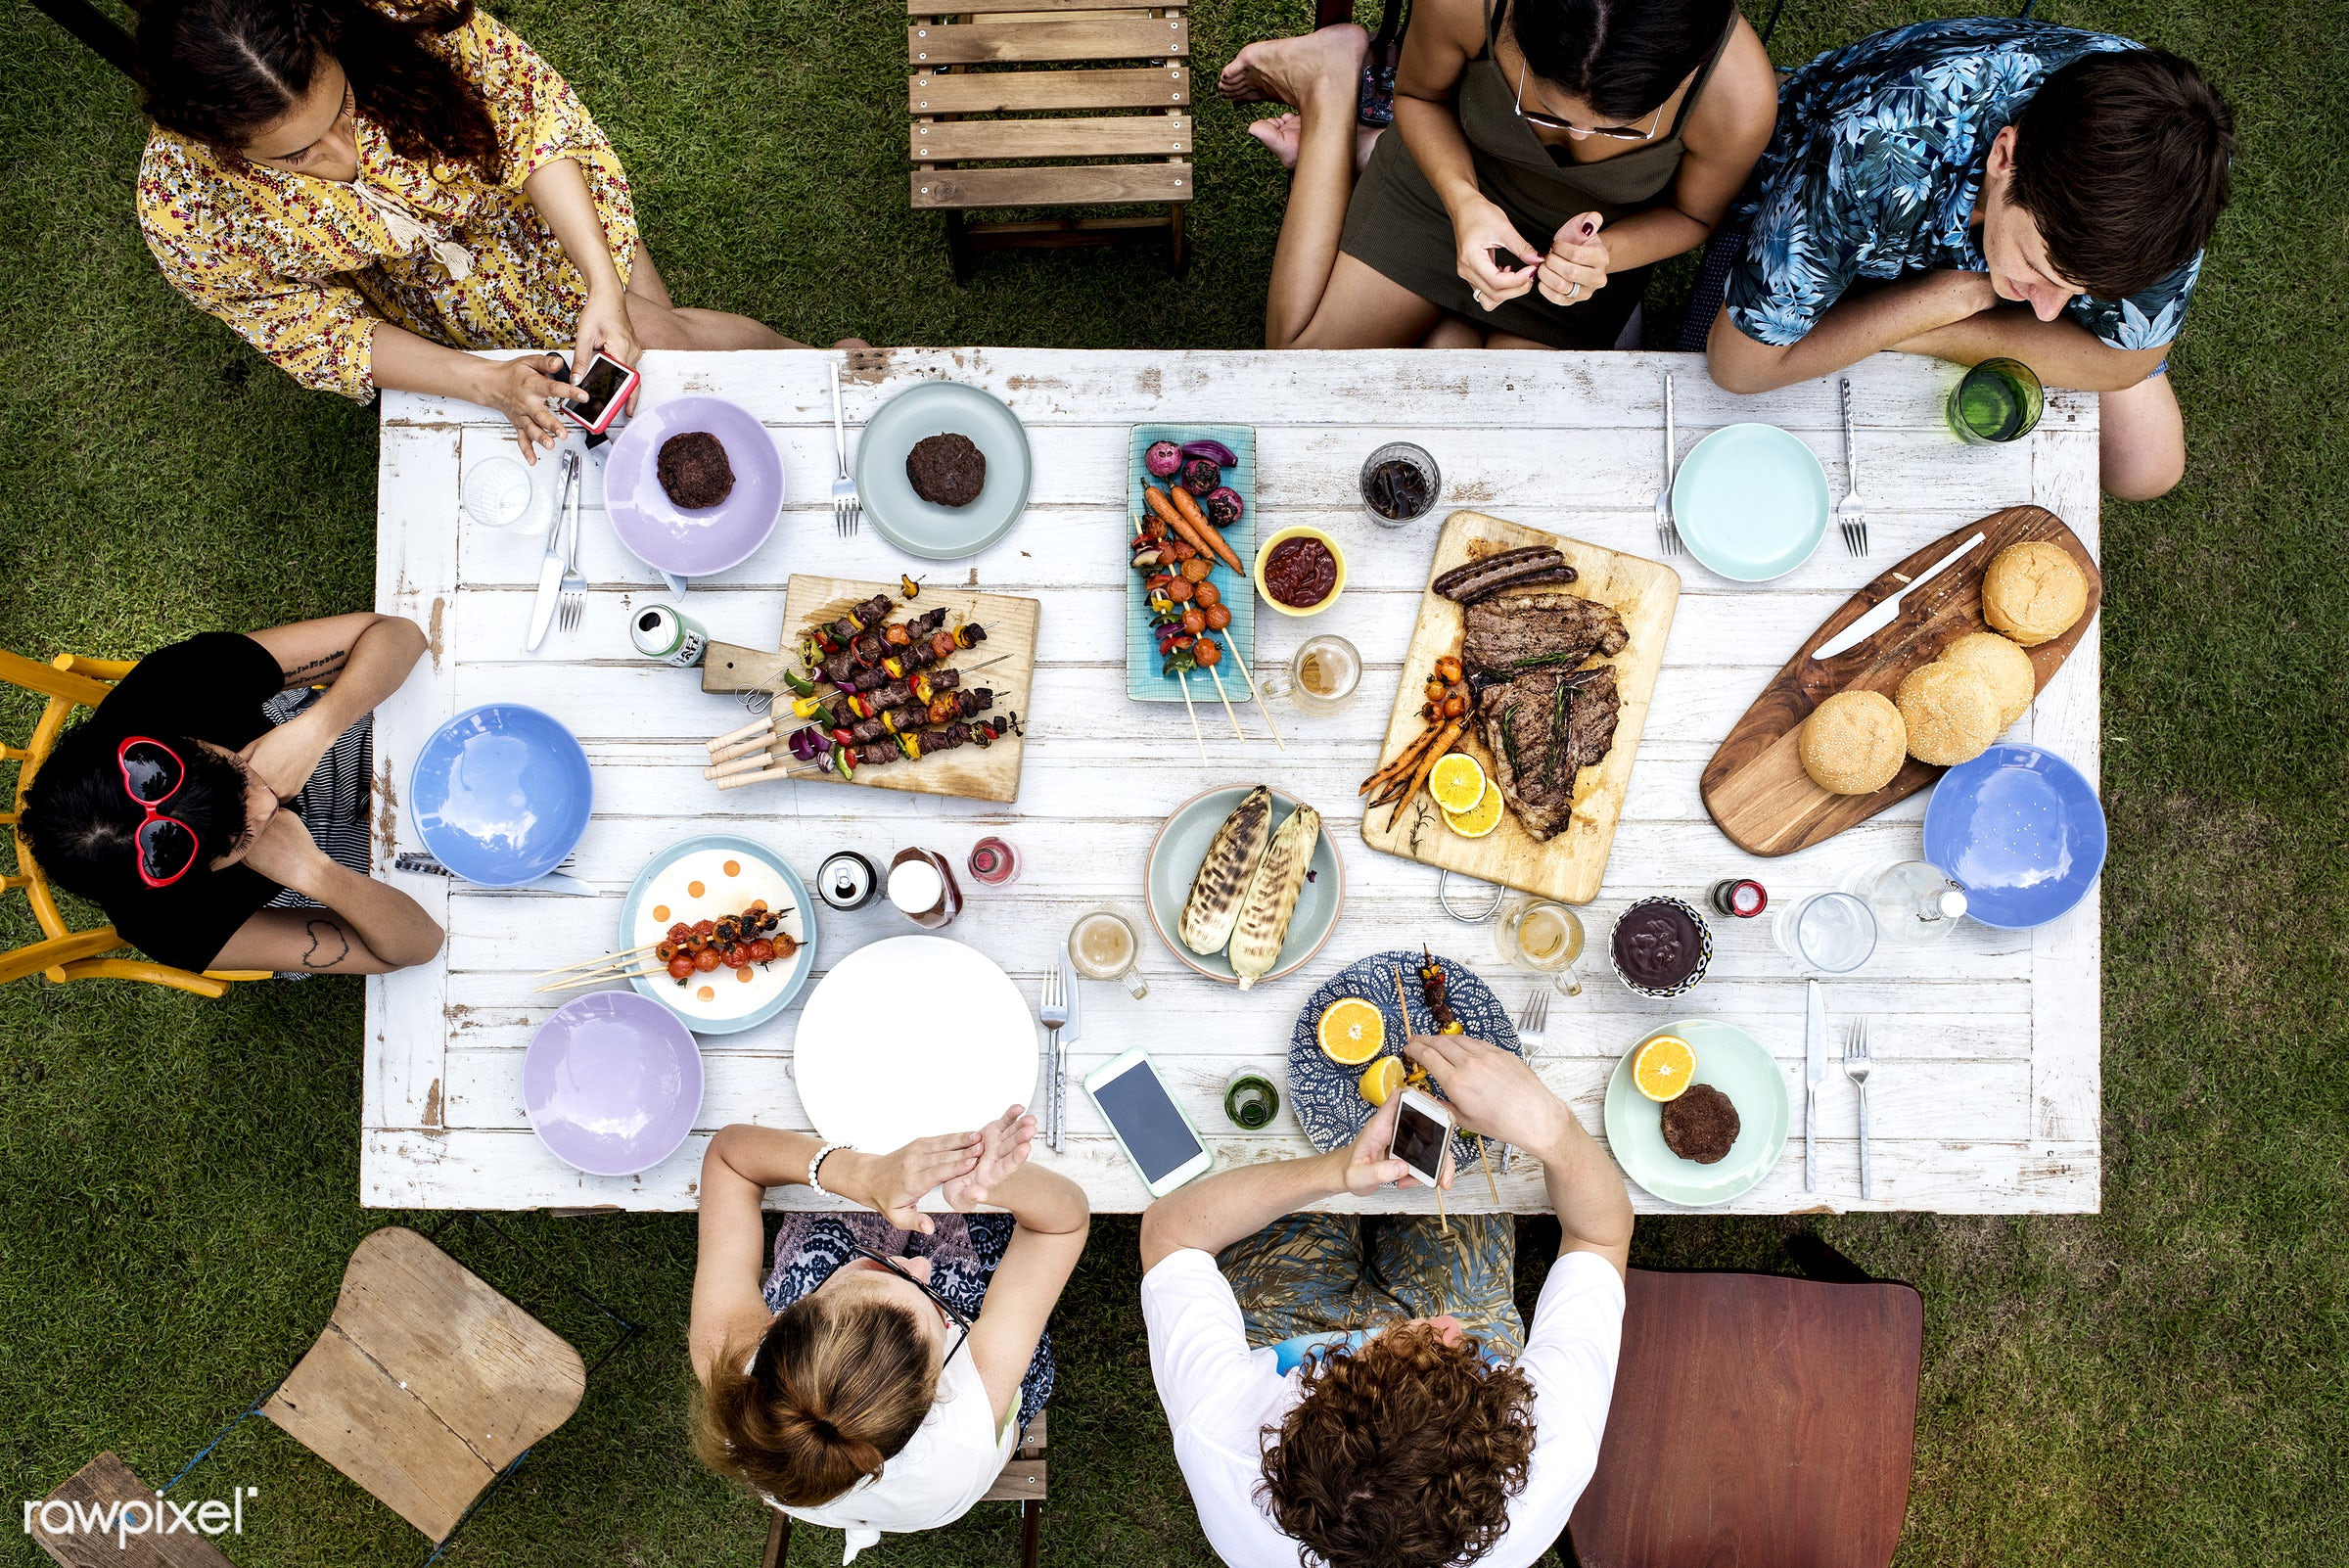 bbq, aerial, barbecue, cheerful, diverse, eat, enjoying, food, friends, fun, gathering, grilled, group, hands, homemade,...